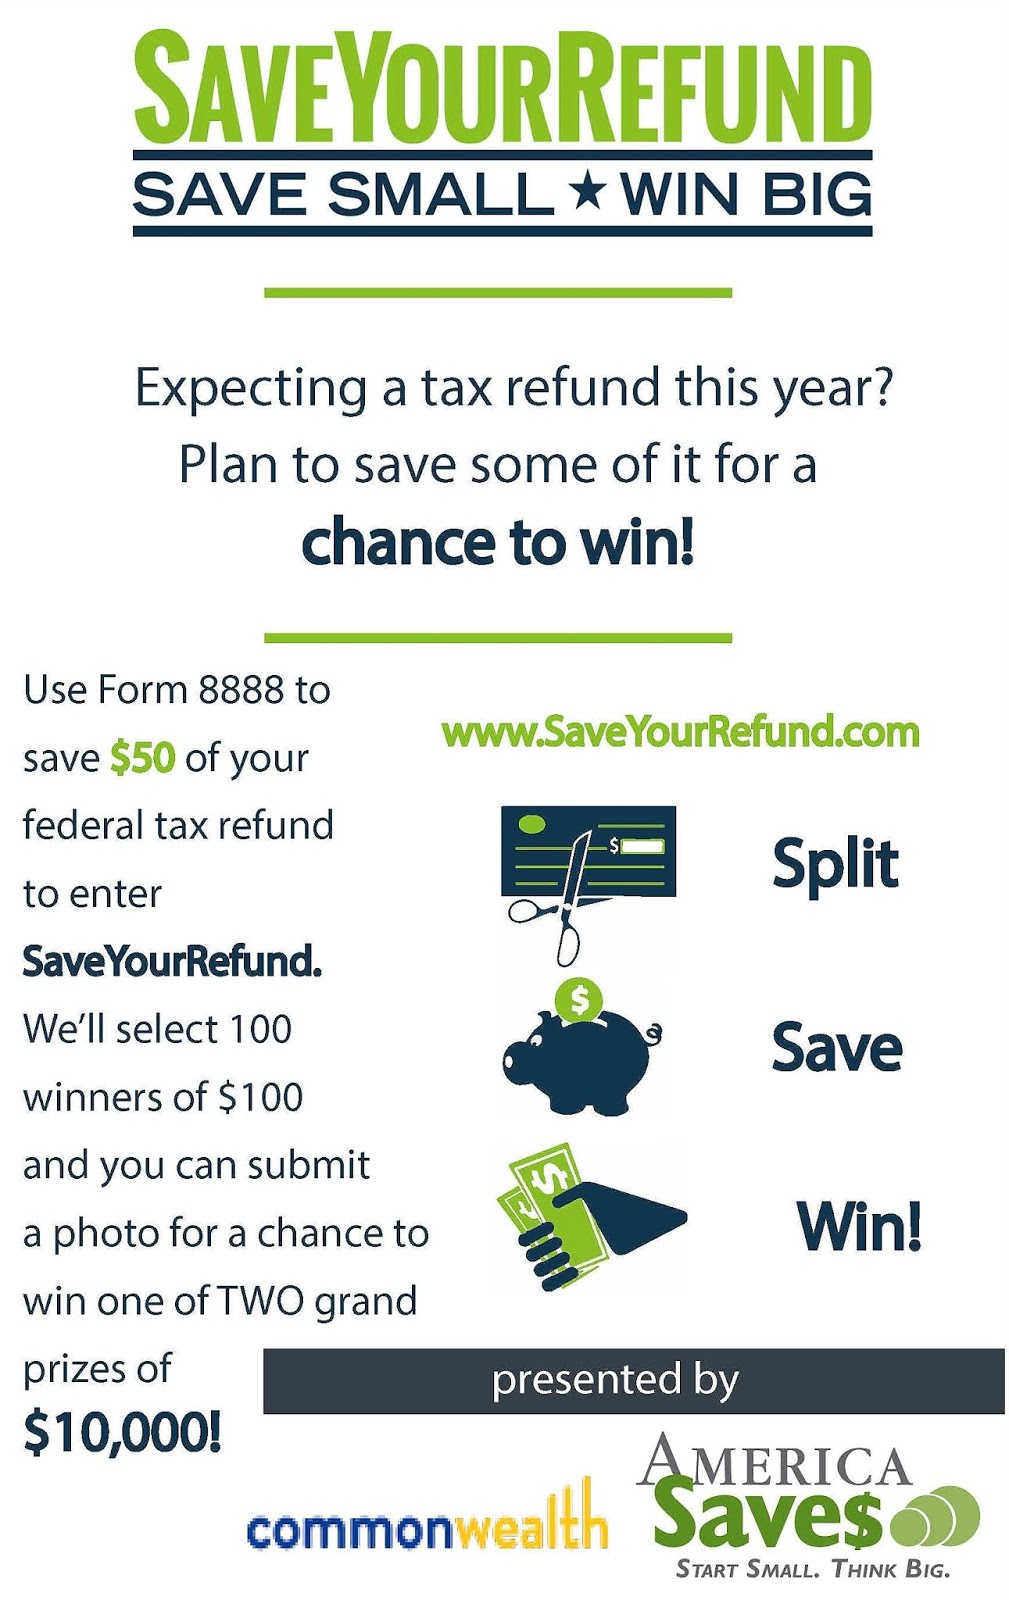 Appalachian Community Federal Credit Union Myacfcu Wiring Instructions Capital One Making More Of A Good Thing